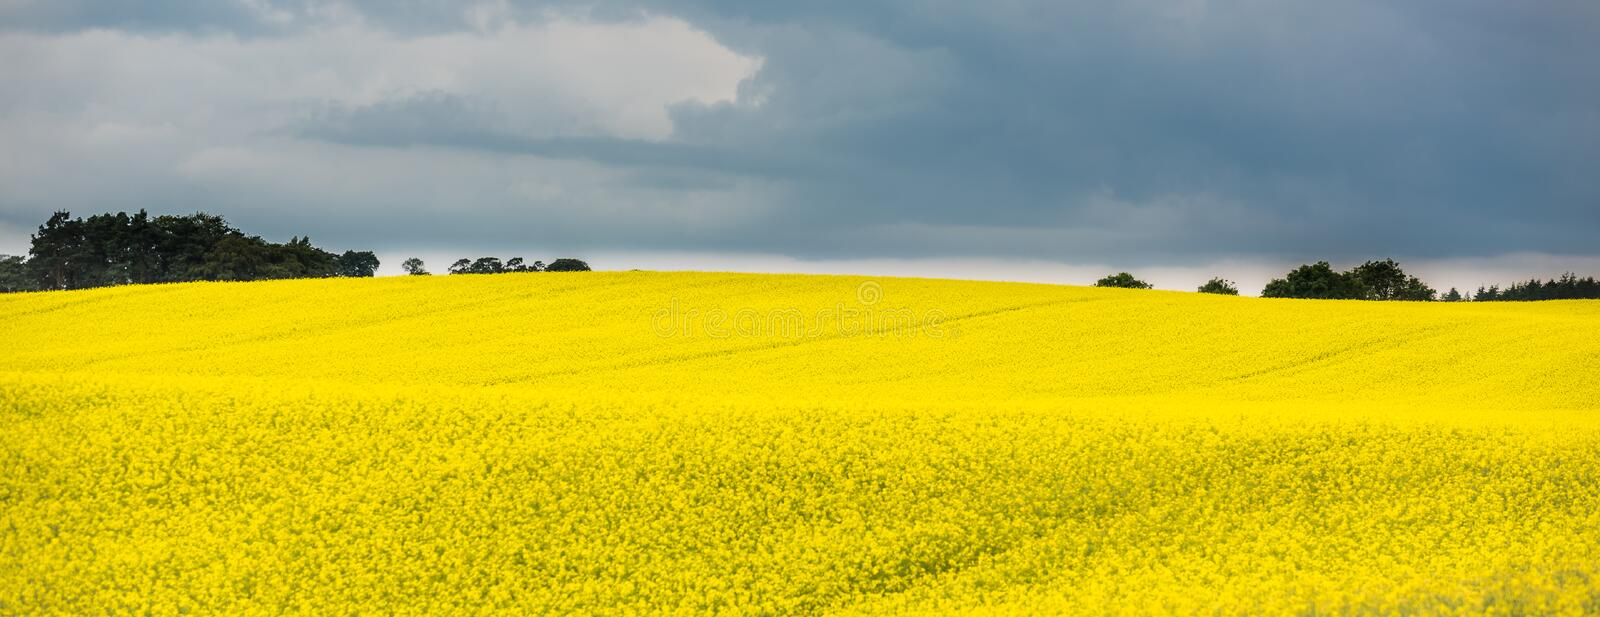 Panoramic view of a blooming yellow rapeseed field with overcast sky, Scotland stock images